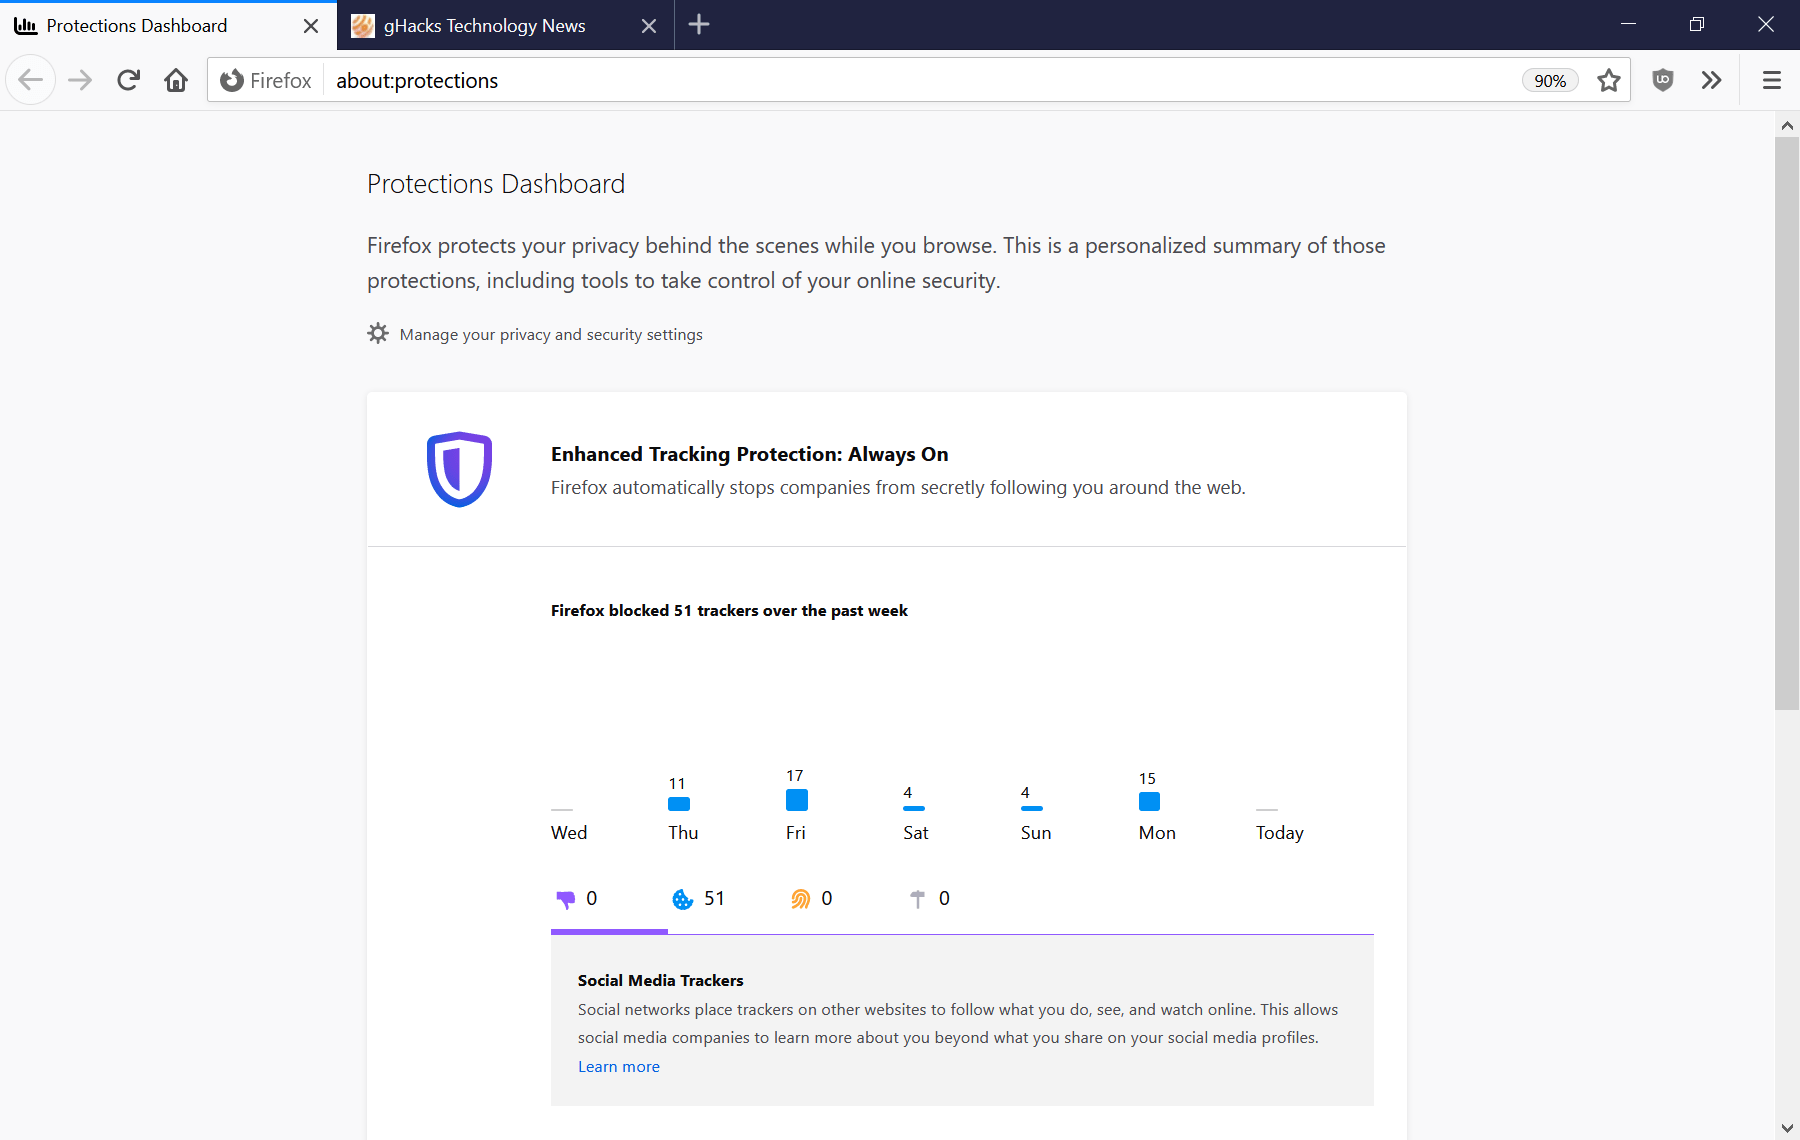 firefox protections dashboard